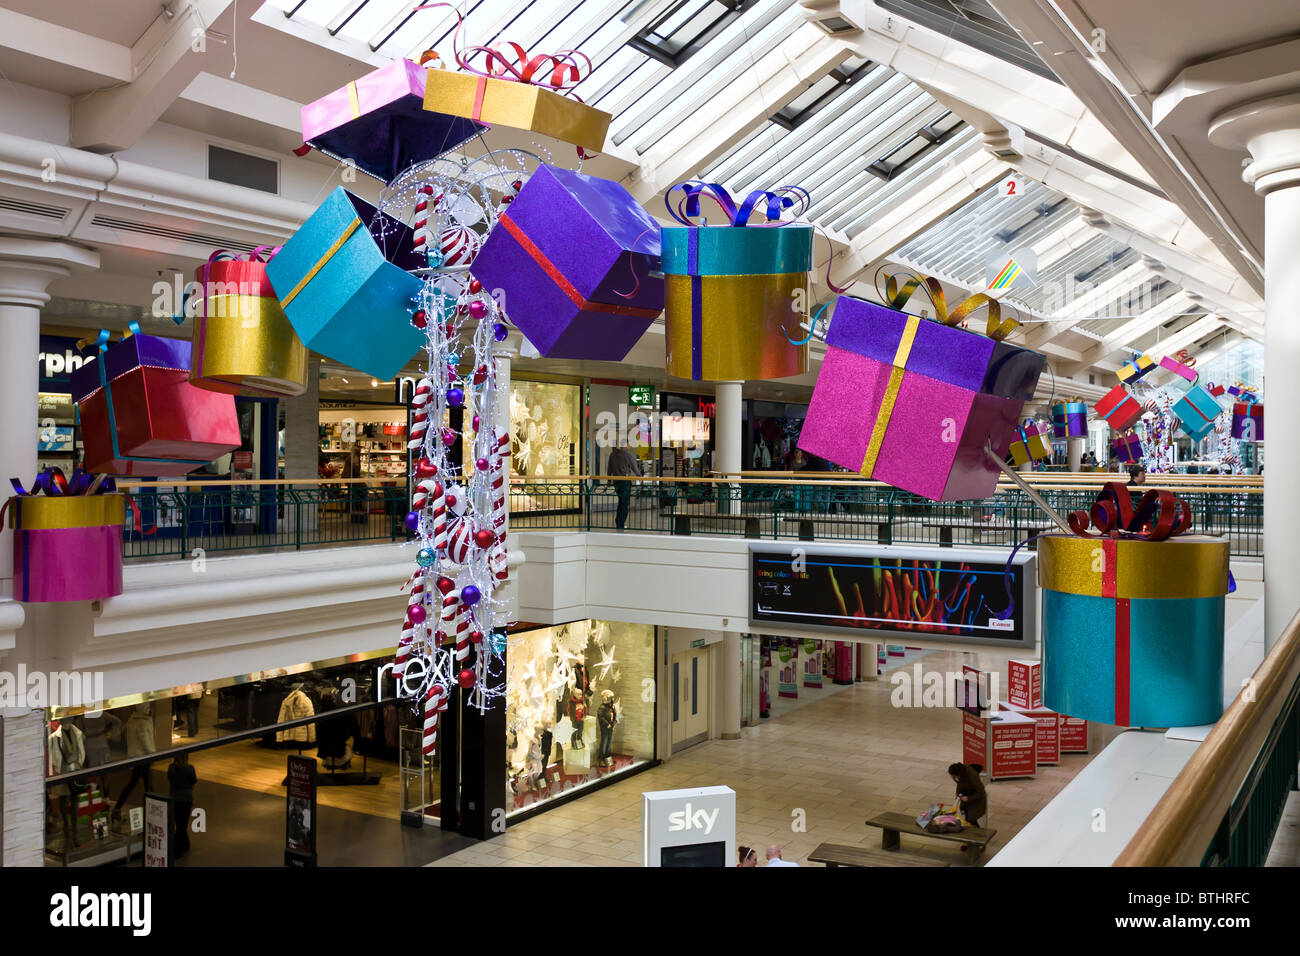 metrocentre gateshead out of town shopping mall christmas decorations display stock image - Mall Christmas Decorations